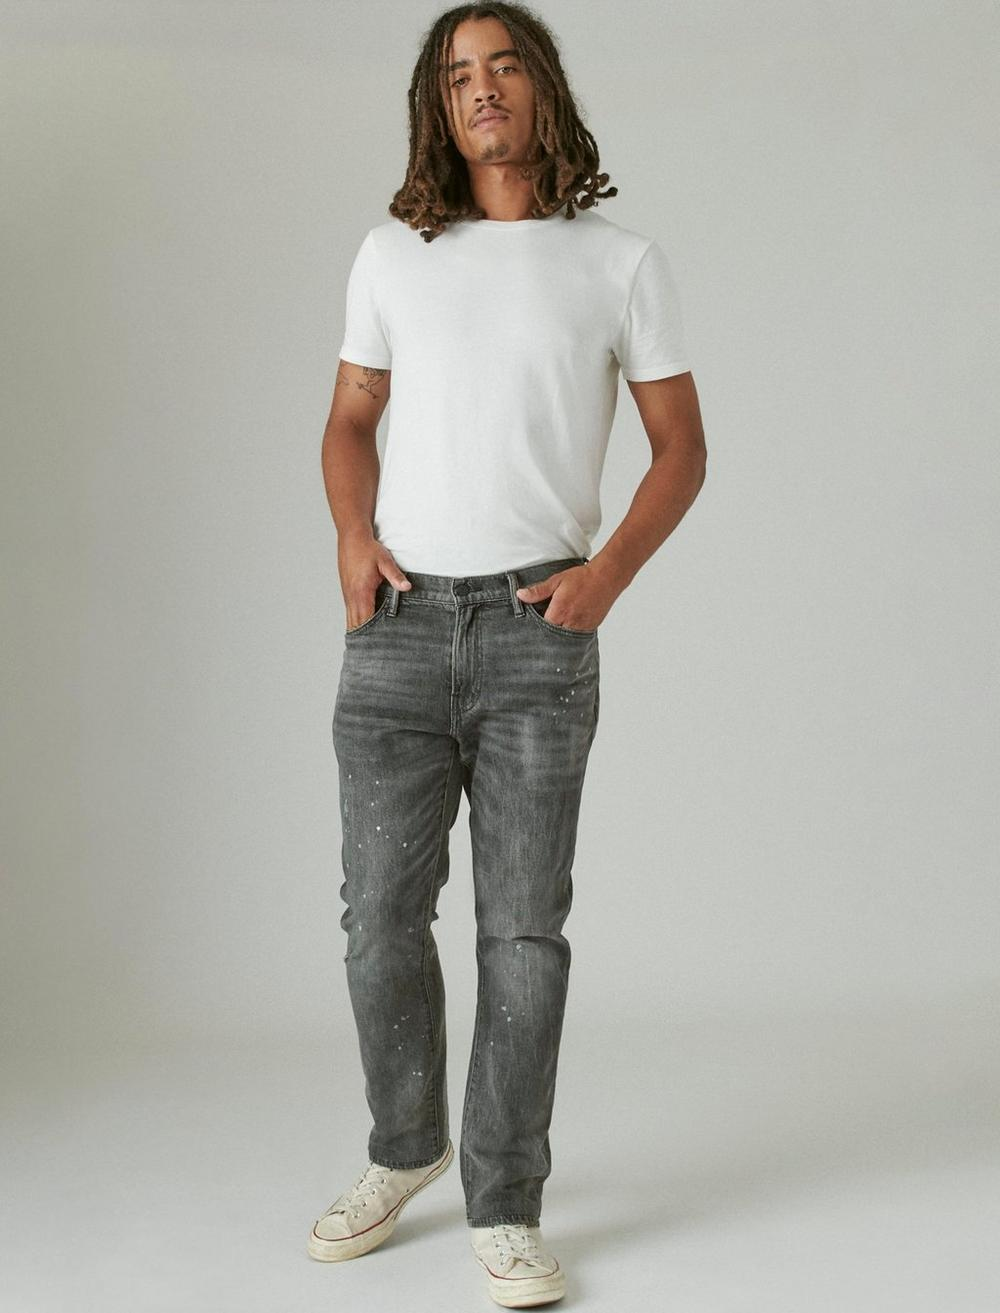 410 ATHLETIC STRAIGHT JEAN, image 1